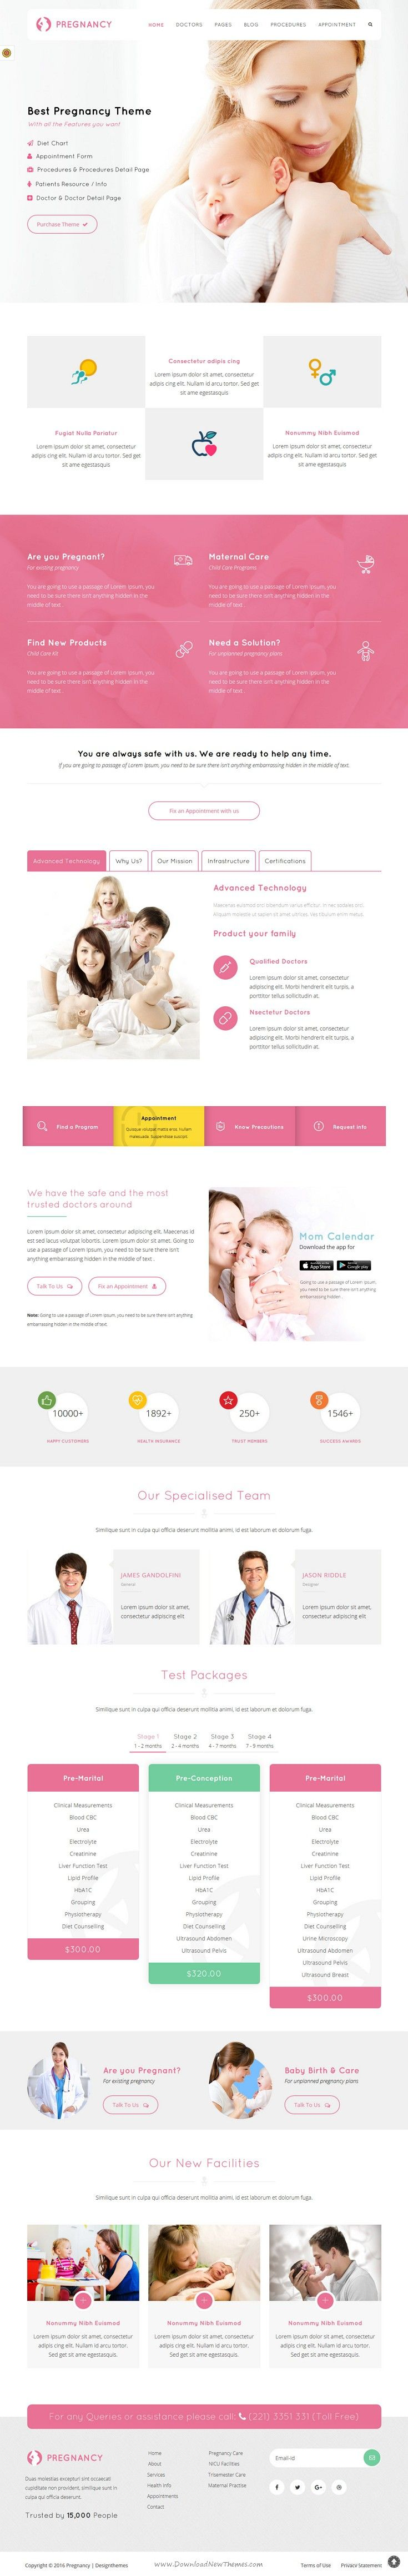 #Pregnancy is an elegant Health and #Medical Business WordPress #Theme best suitable for Gynecologist and Infant or Child specialists and Hospitals #website. Download Now!